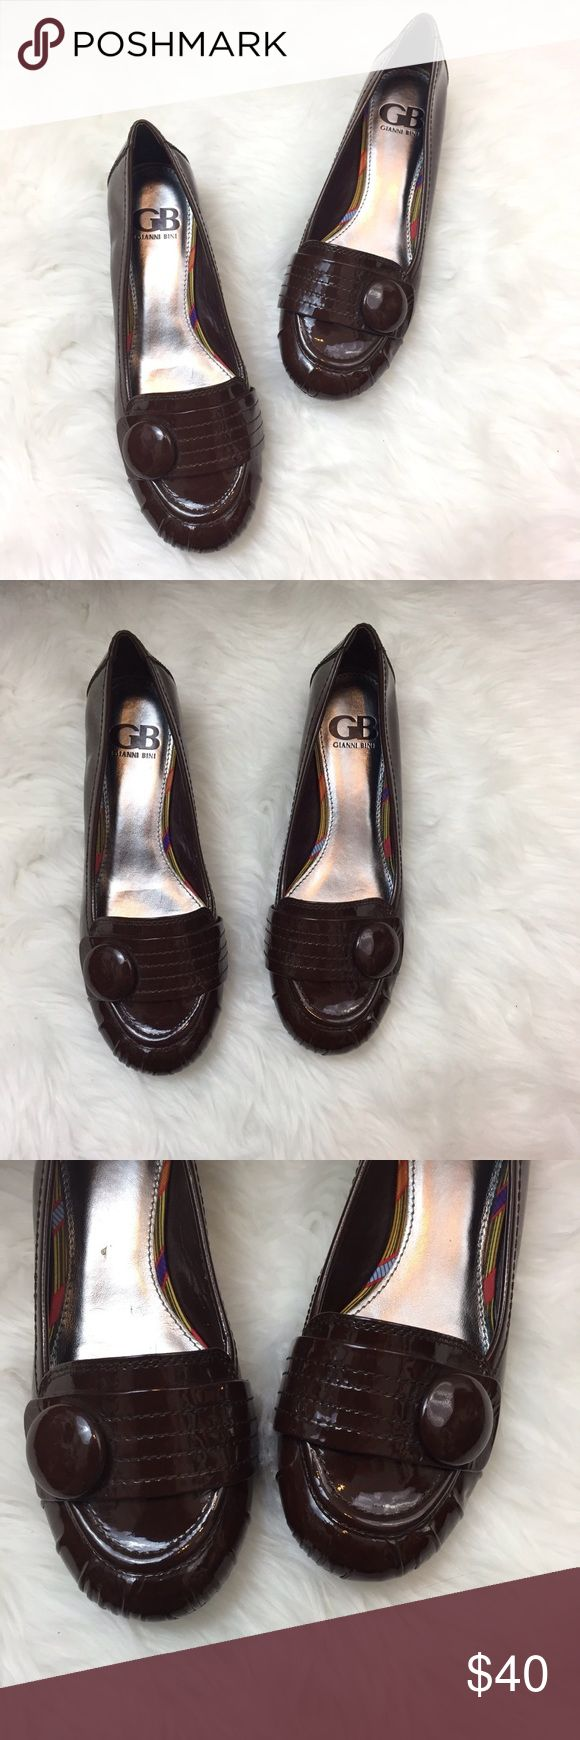 🌞GB Gianni Bini Brown Patent Loafer Wedge Flats GB Gianni Bini NWOB Brown Patent Loafer Wedge Flats Size 7  1 inch tall  This is new without box.  Never been worn. Please refer to photos for more details. Gianni Bini Shoes Flats & Loafers